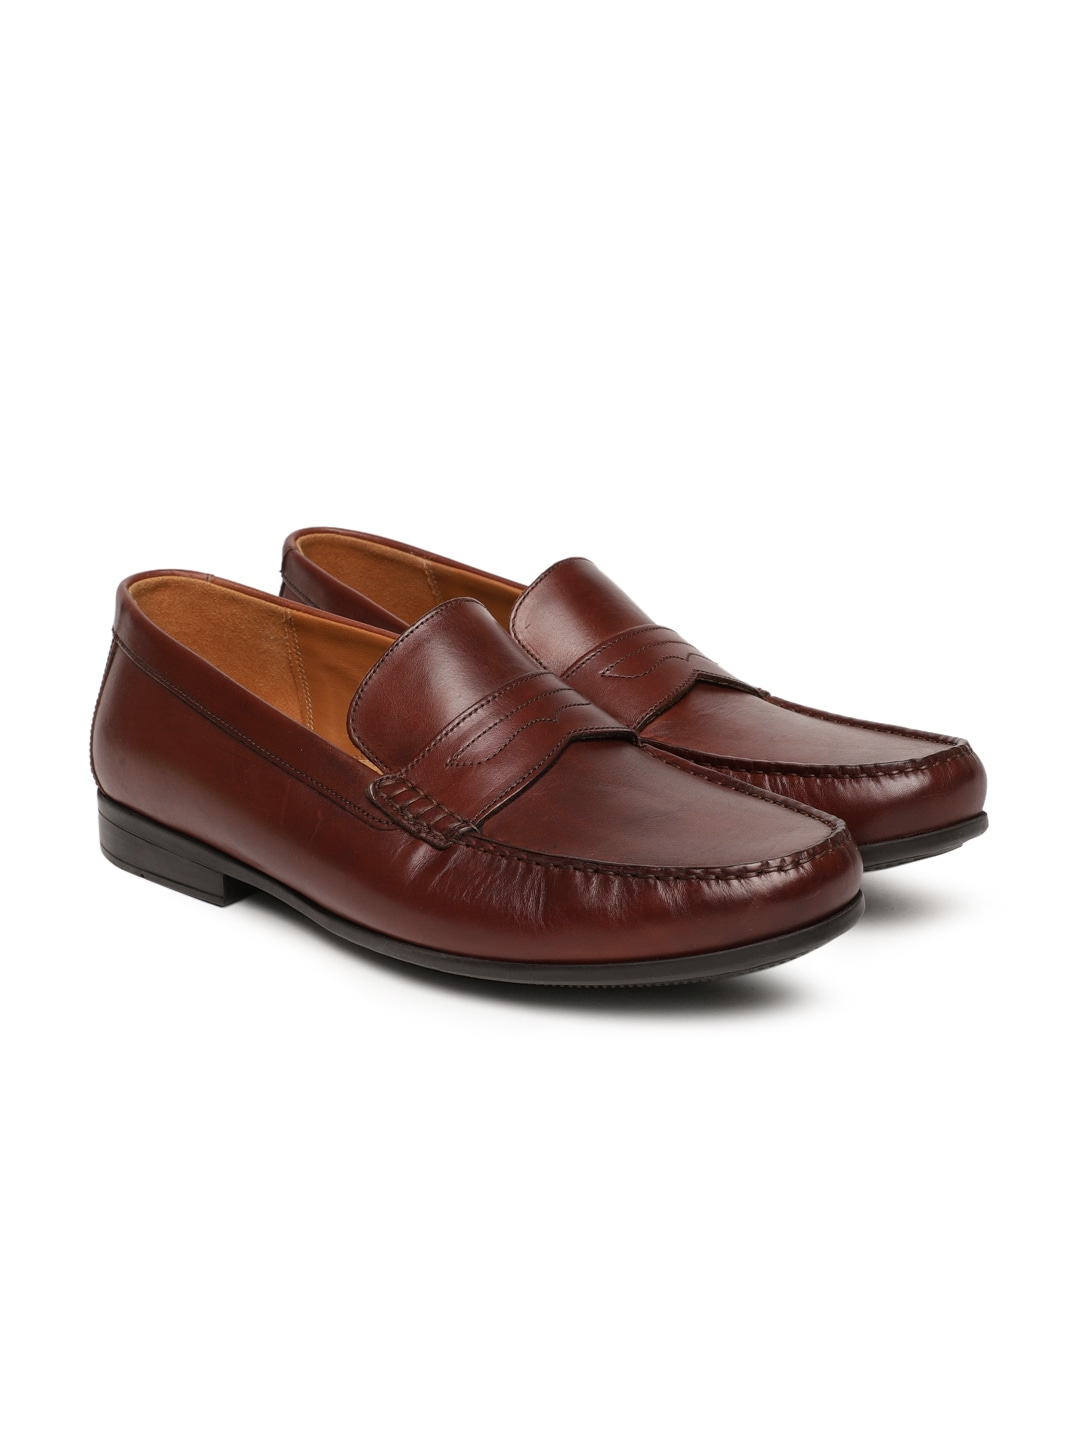 9ab701a054f Clarks Formal Shoes